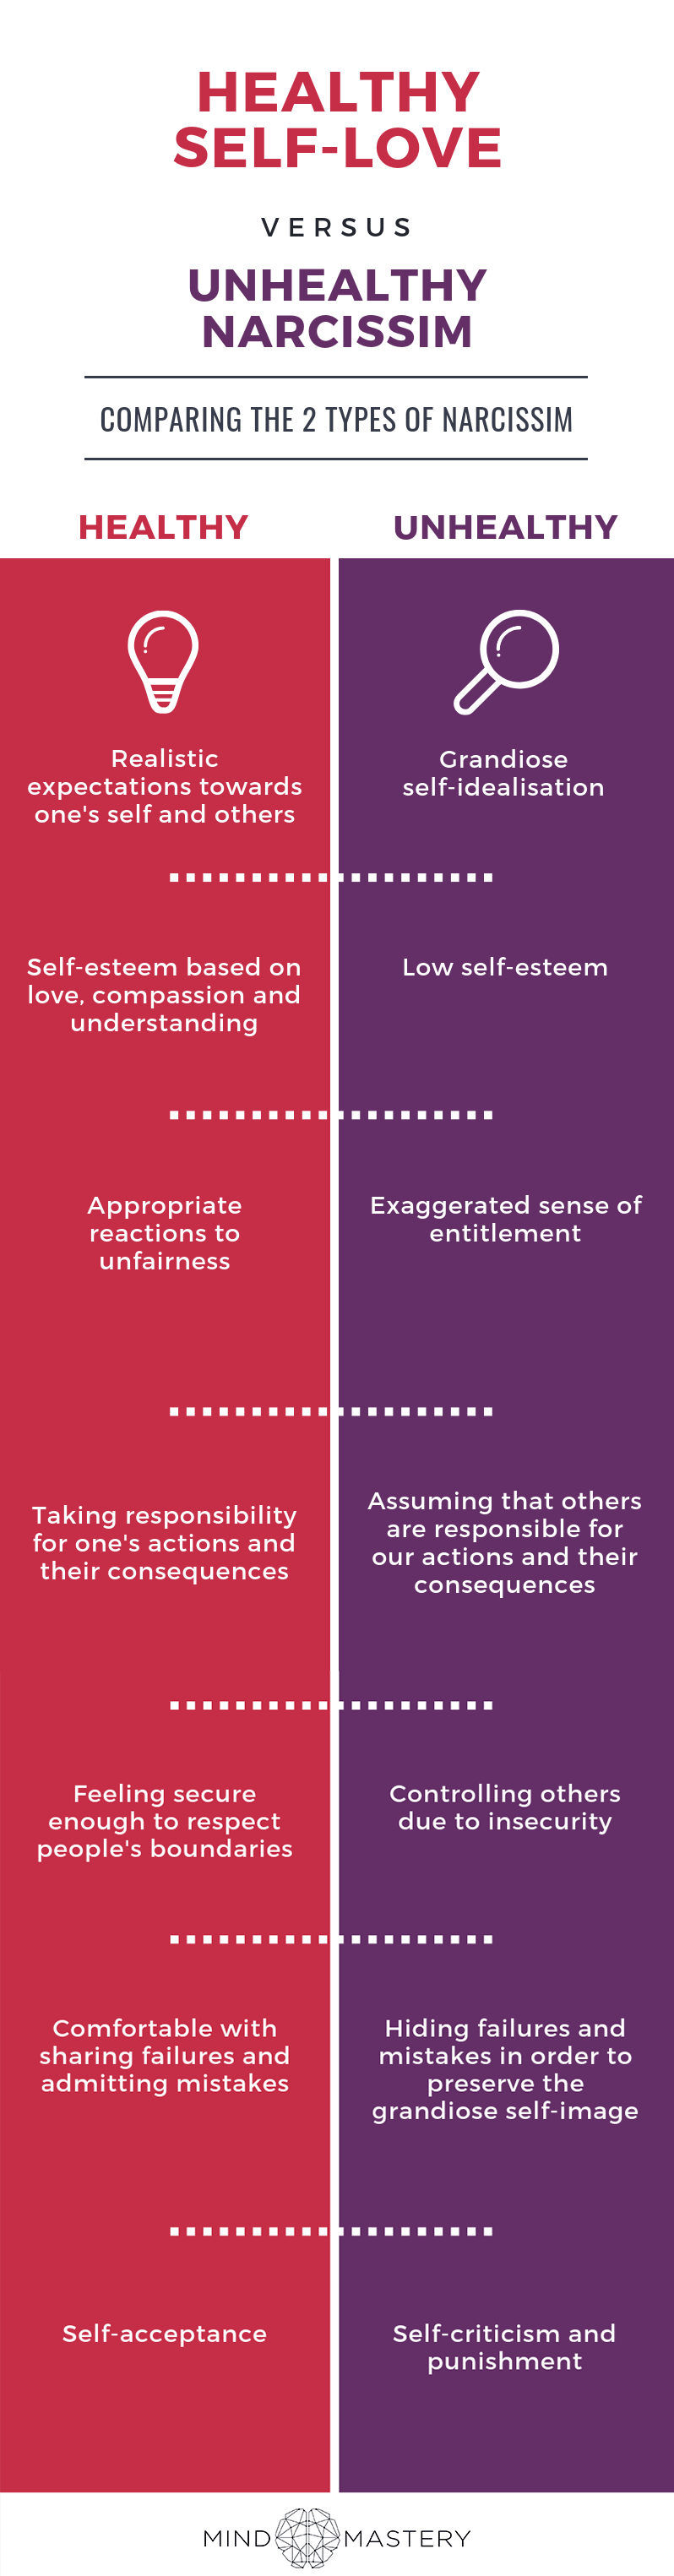 Healthy Self Love vs Unhealthy Narcissism